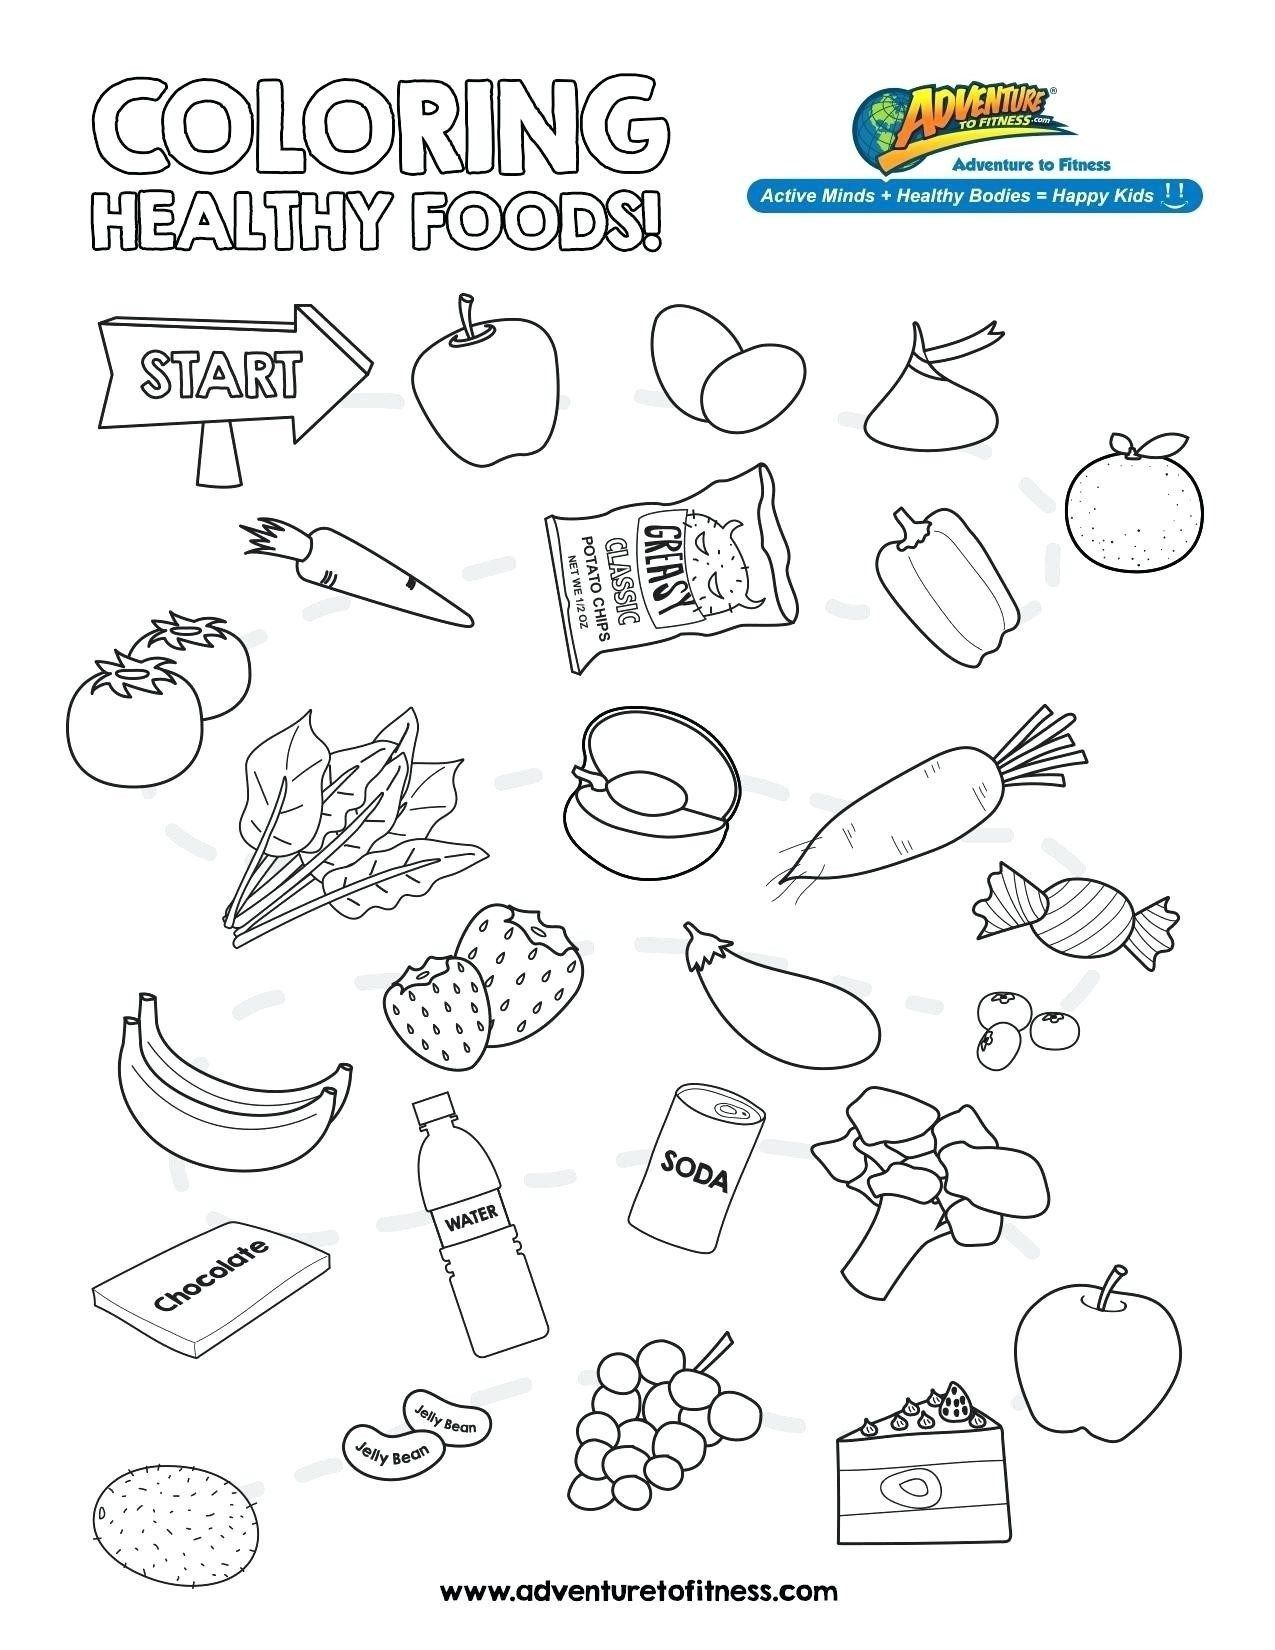 Pretty Photo Of Healthy Food Coloring Pages Davemelillo Com Food Coloring Pages Healthy Habits For Kids Food Pyramid